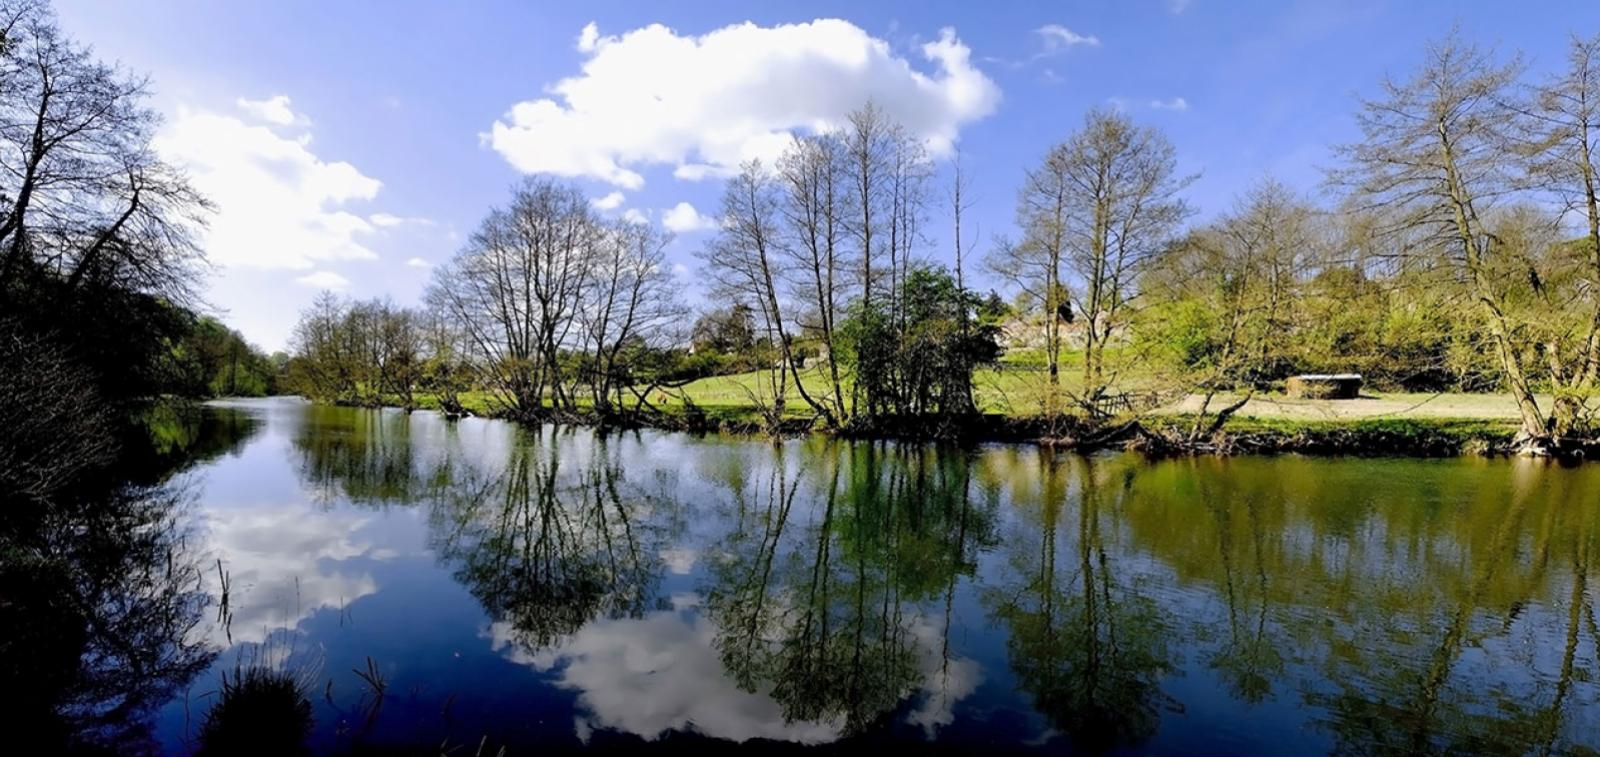 A picturesque landscape view of the River Teme, near Ludlow.